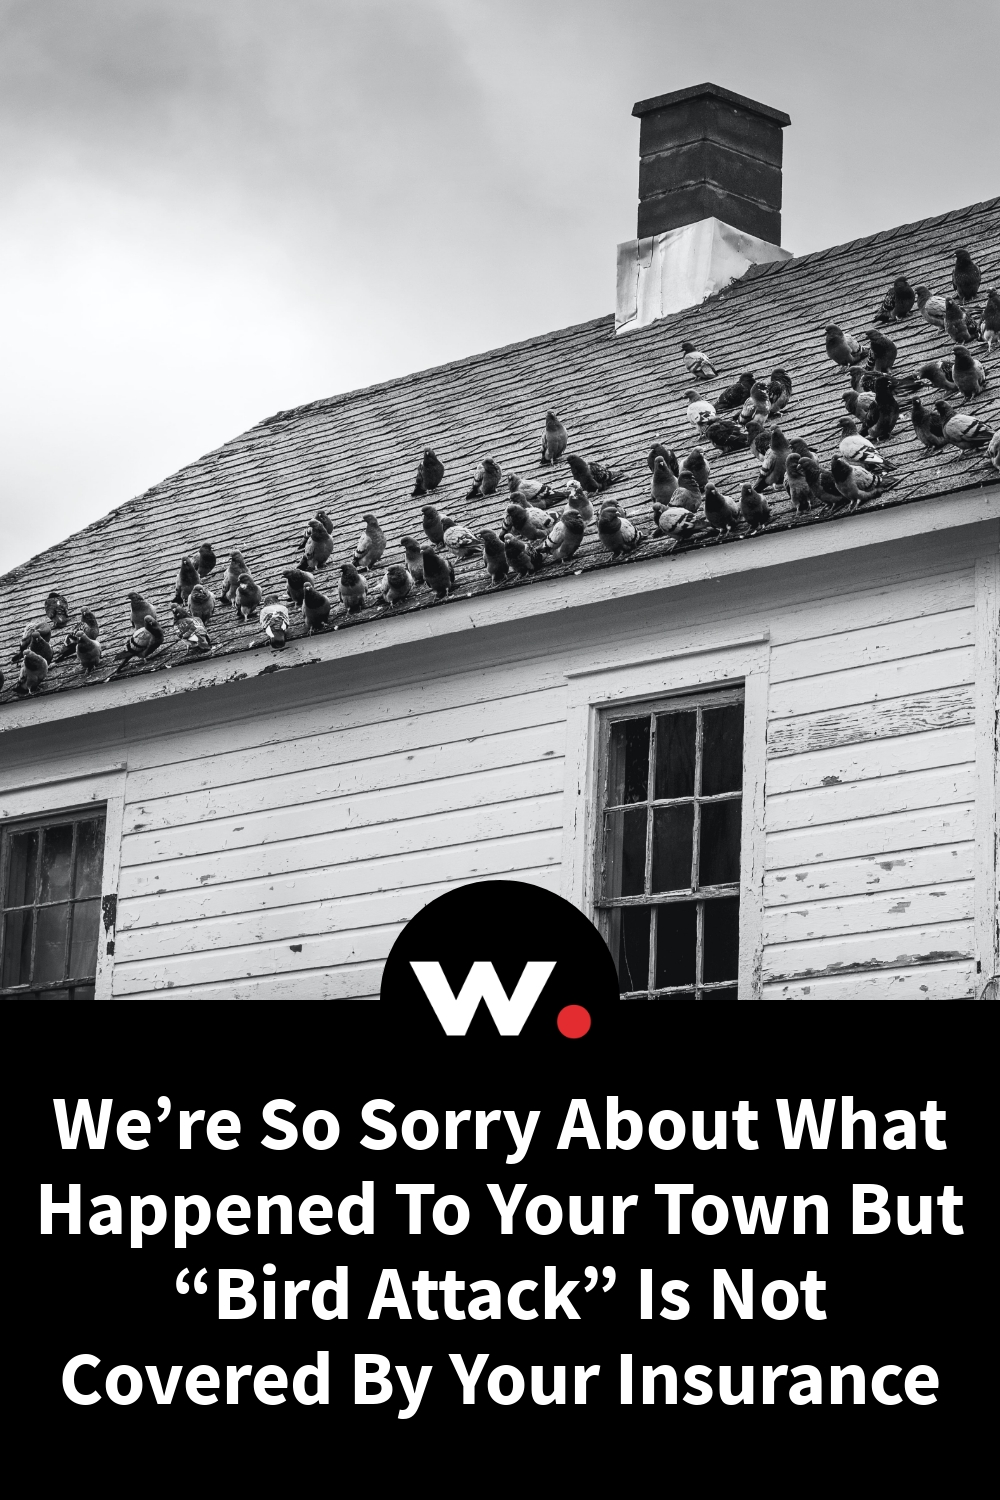 """We're So Sorry About What Happened To Your Town But """"Bird Attack"""" Is Not Covered By Your Insurance"""